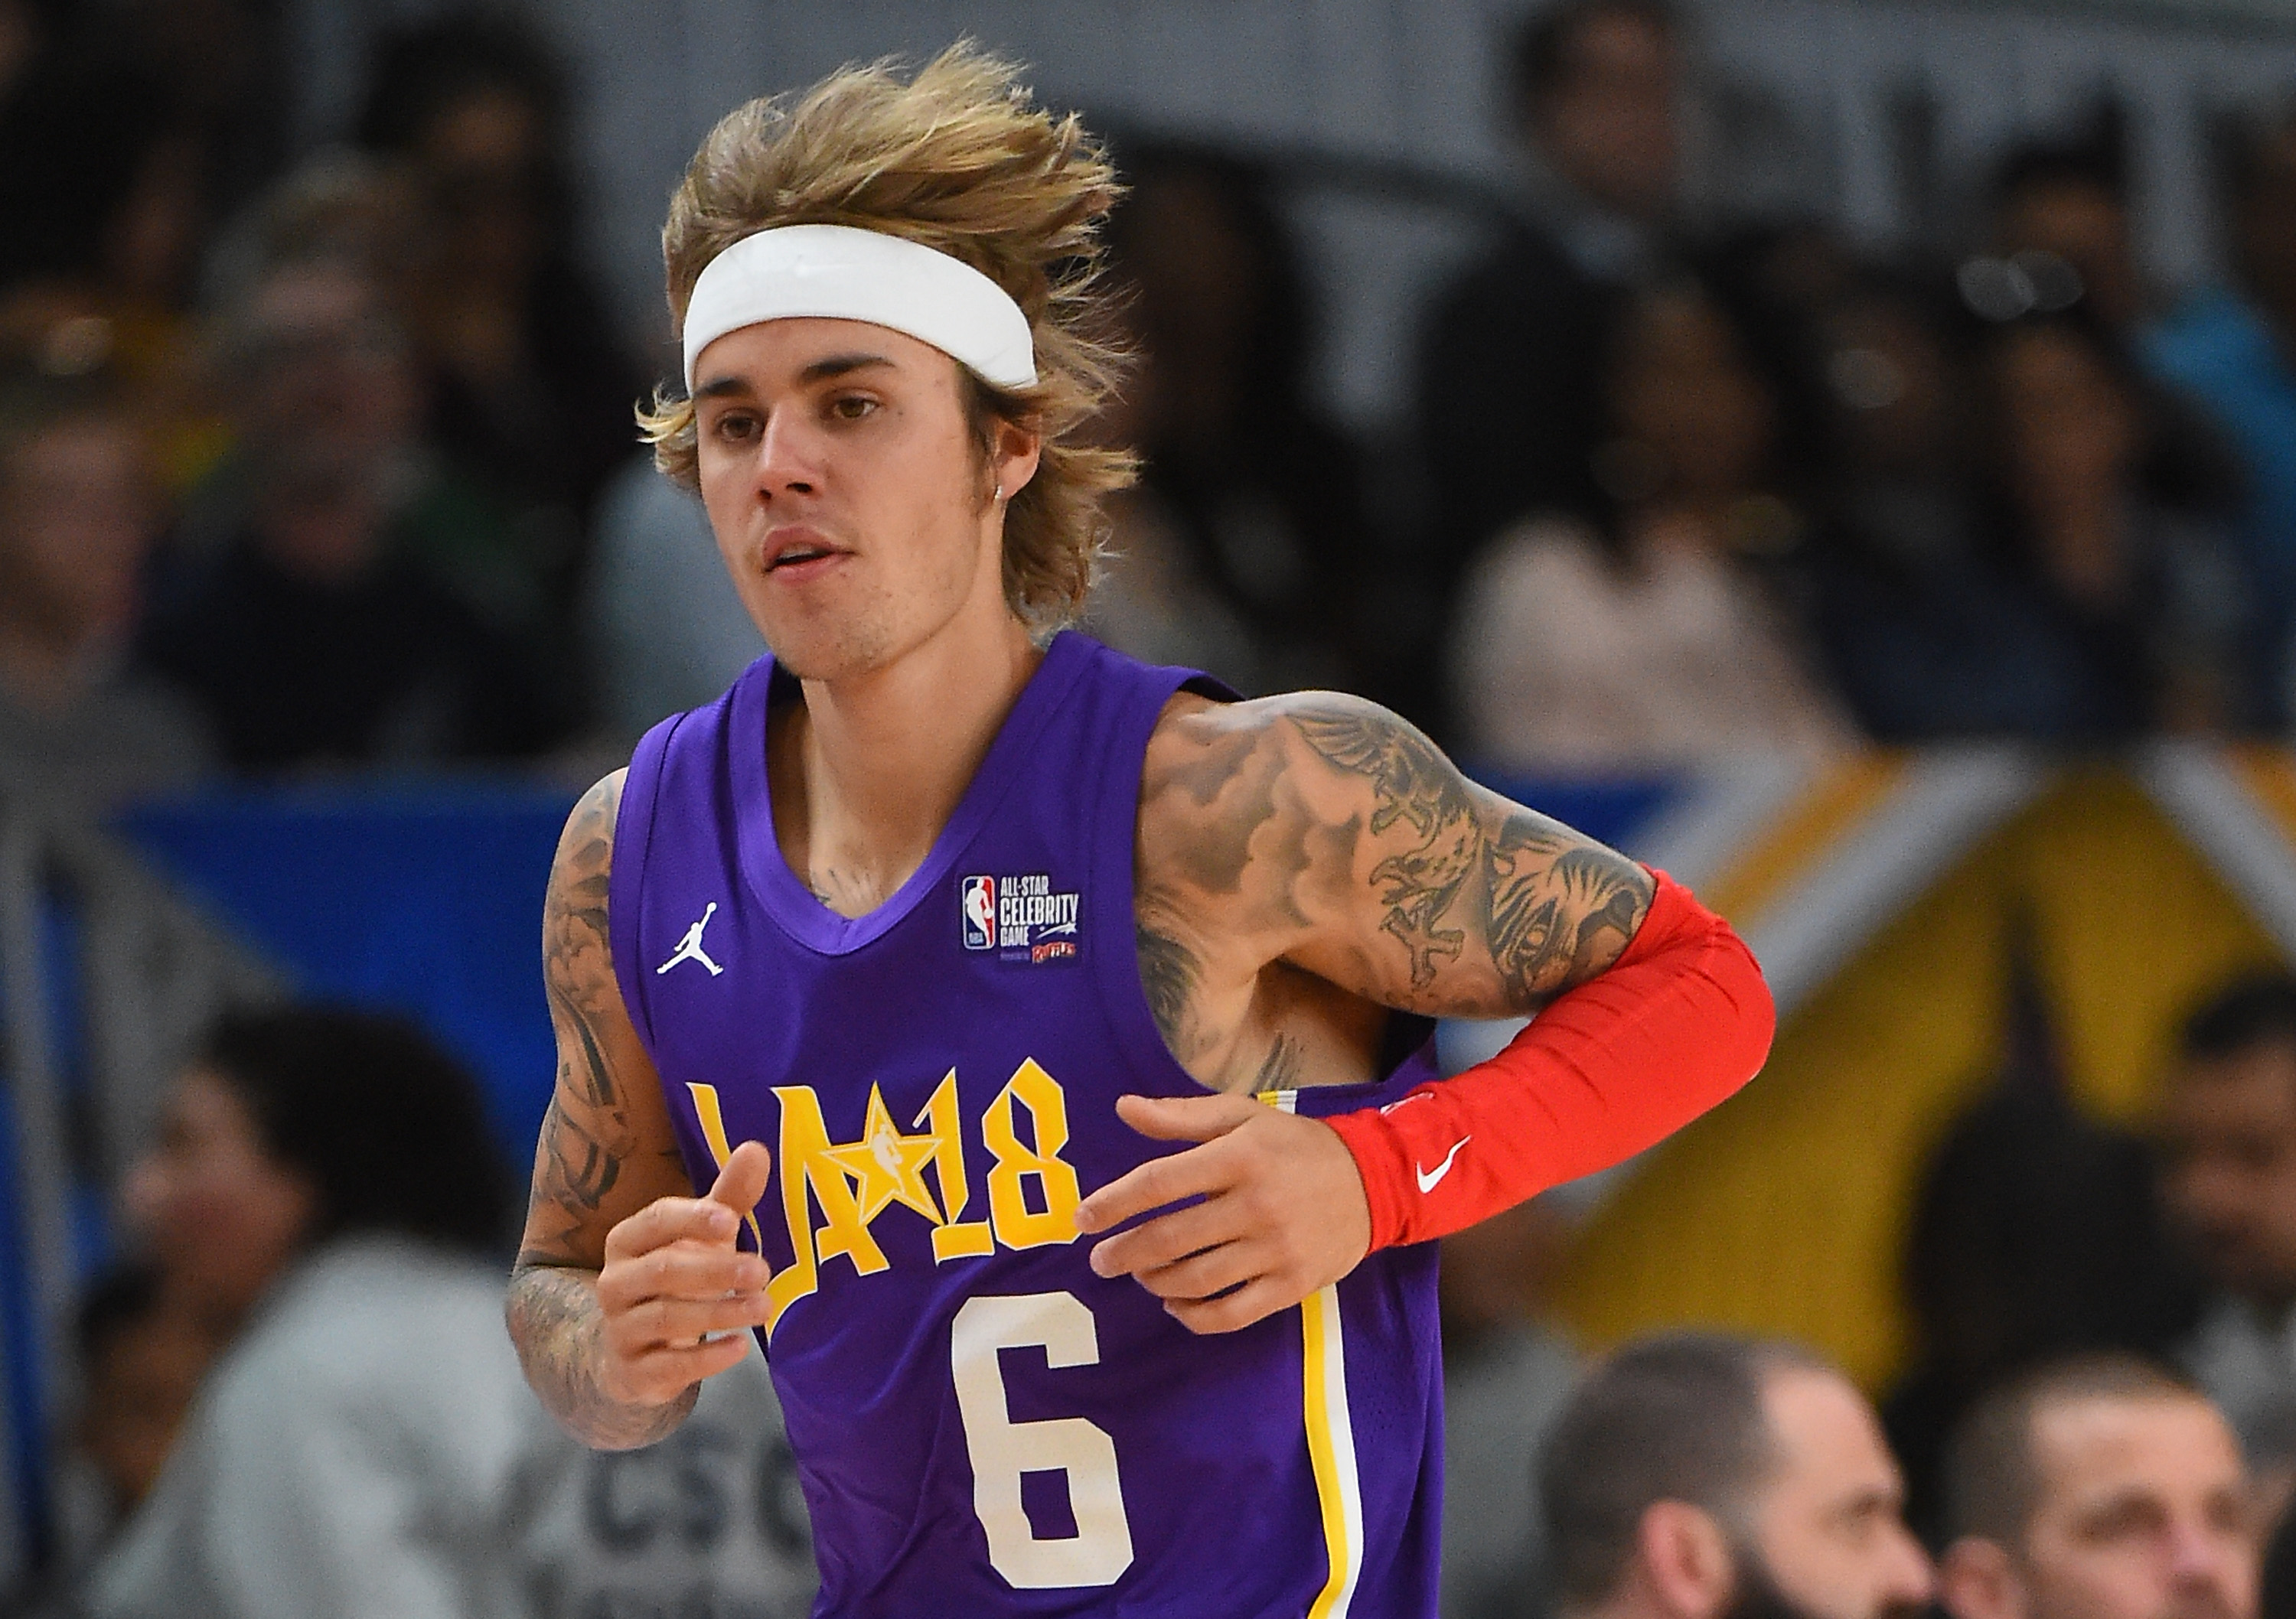 singer and songwriter Justin Bieber plays during the 2018 NBA All-Star Game Celebrity Game at Los Angeles Convention Center on February 16, 2018 in Los Angeles, California.